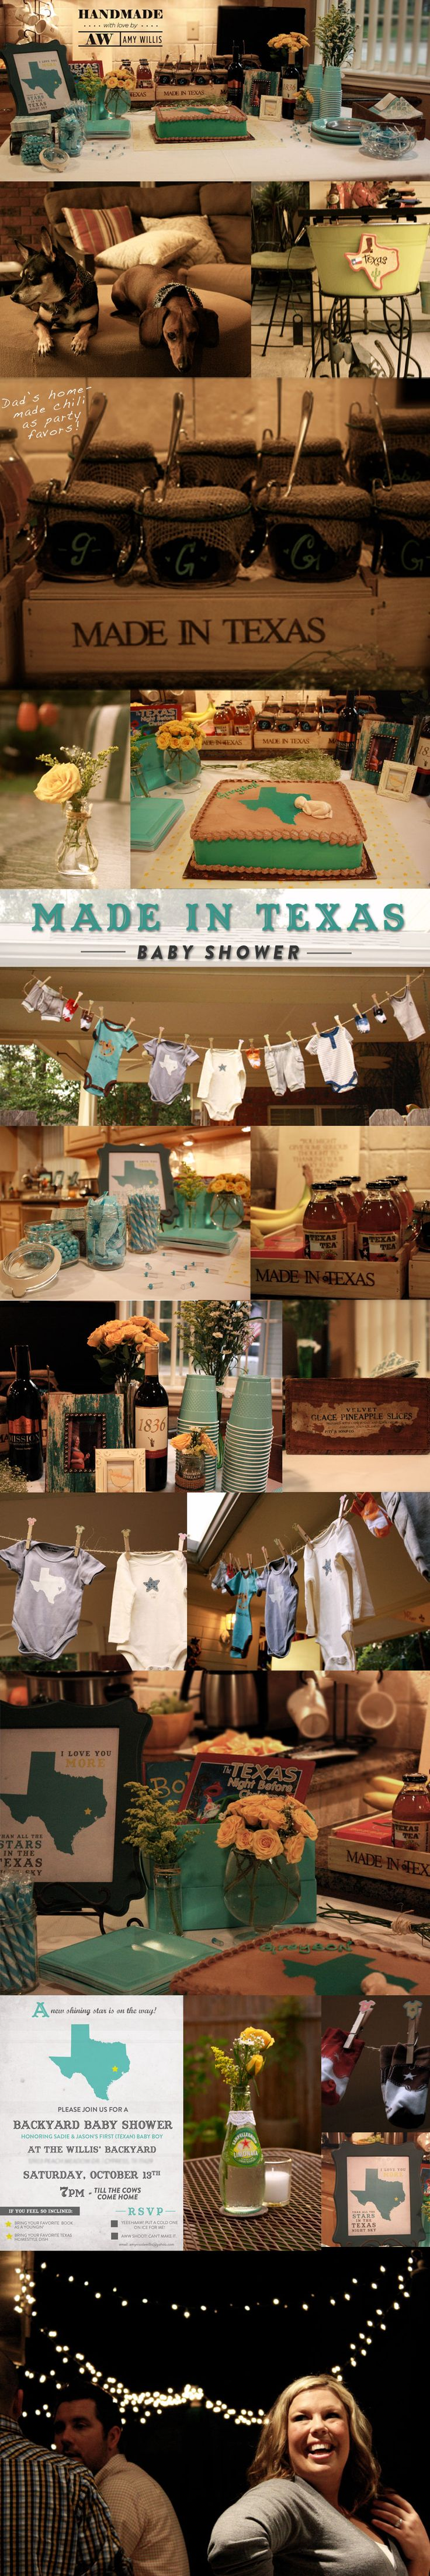 """Made in Texas Baby Shower. This past weekend my amazing family and I threw a """"Made in Texas"""" baby shower for my good friends Sadie & Jason's baby boy that is on the way.  It couldn't have been more perfect!"""